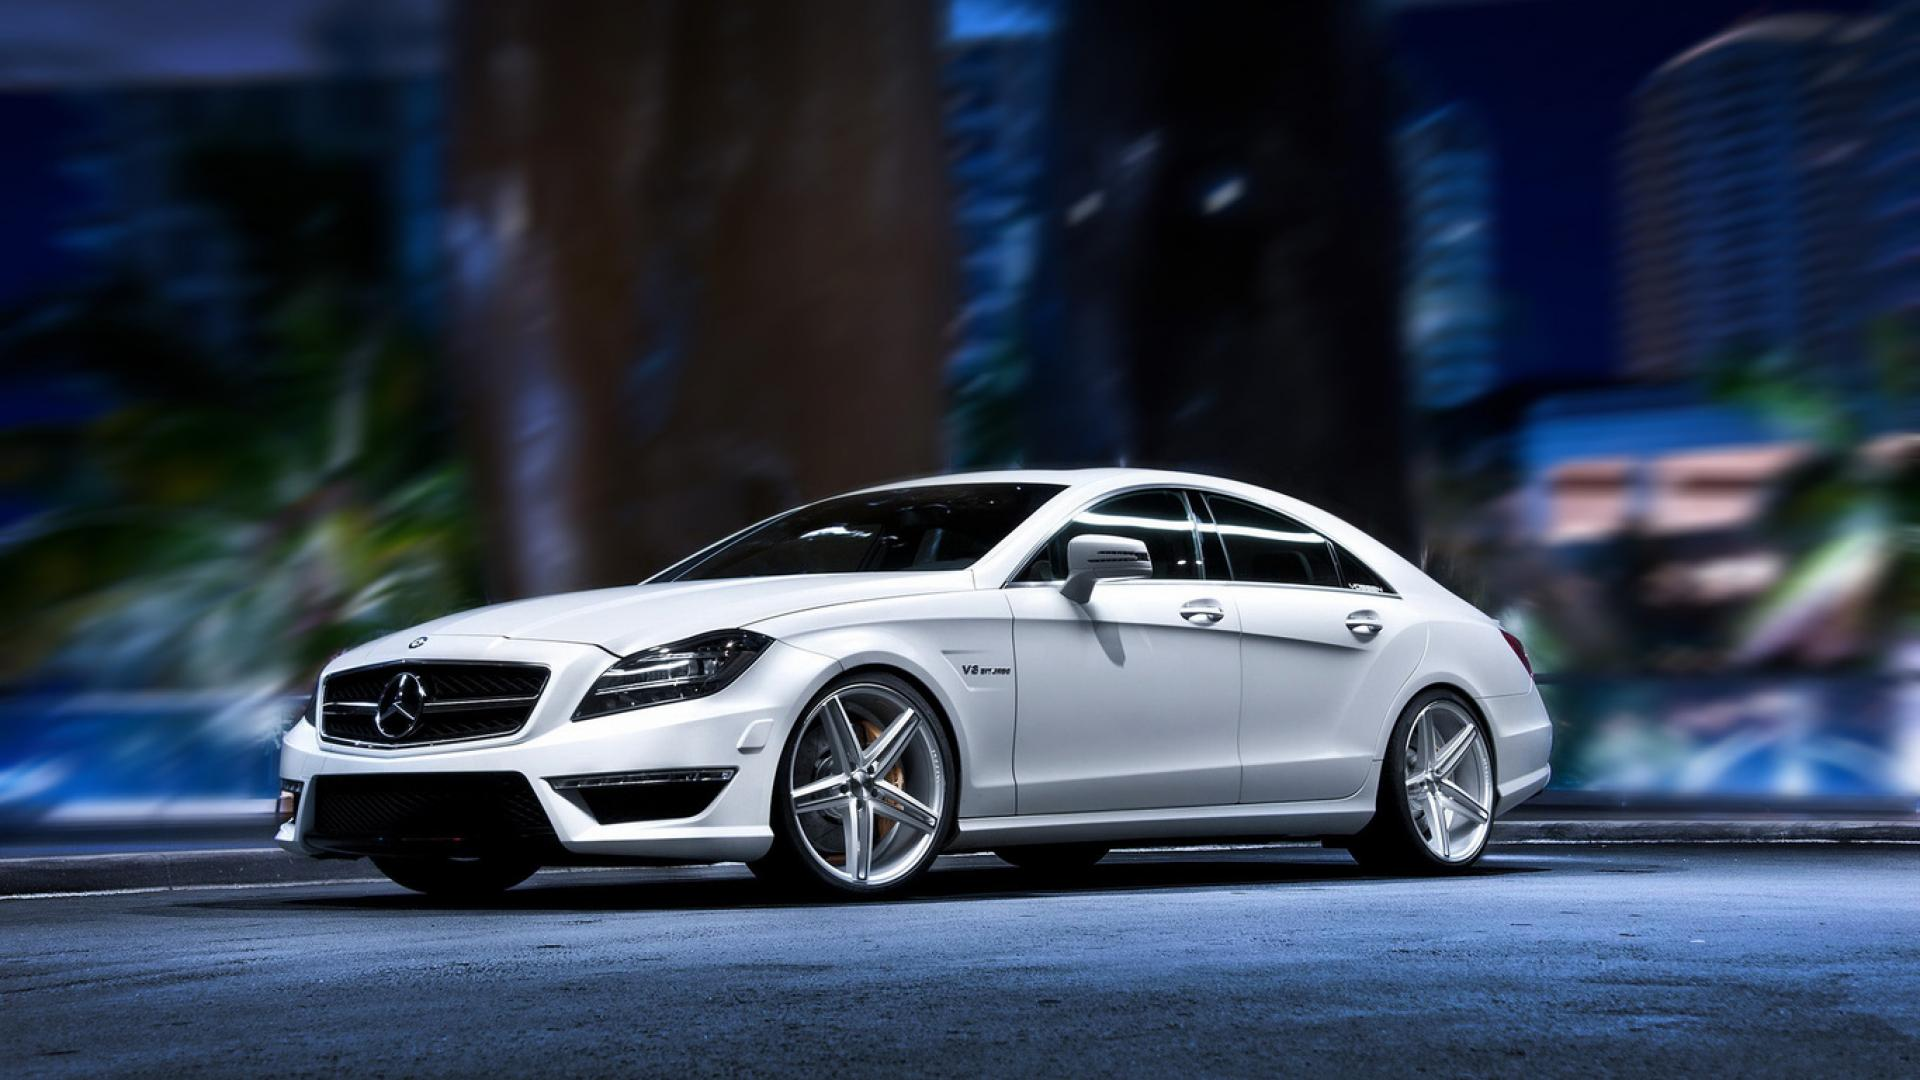 Mercedes Benz Wallpaper 2 1920x1080